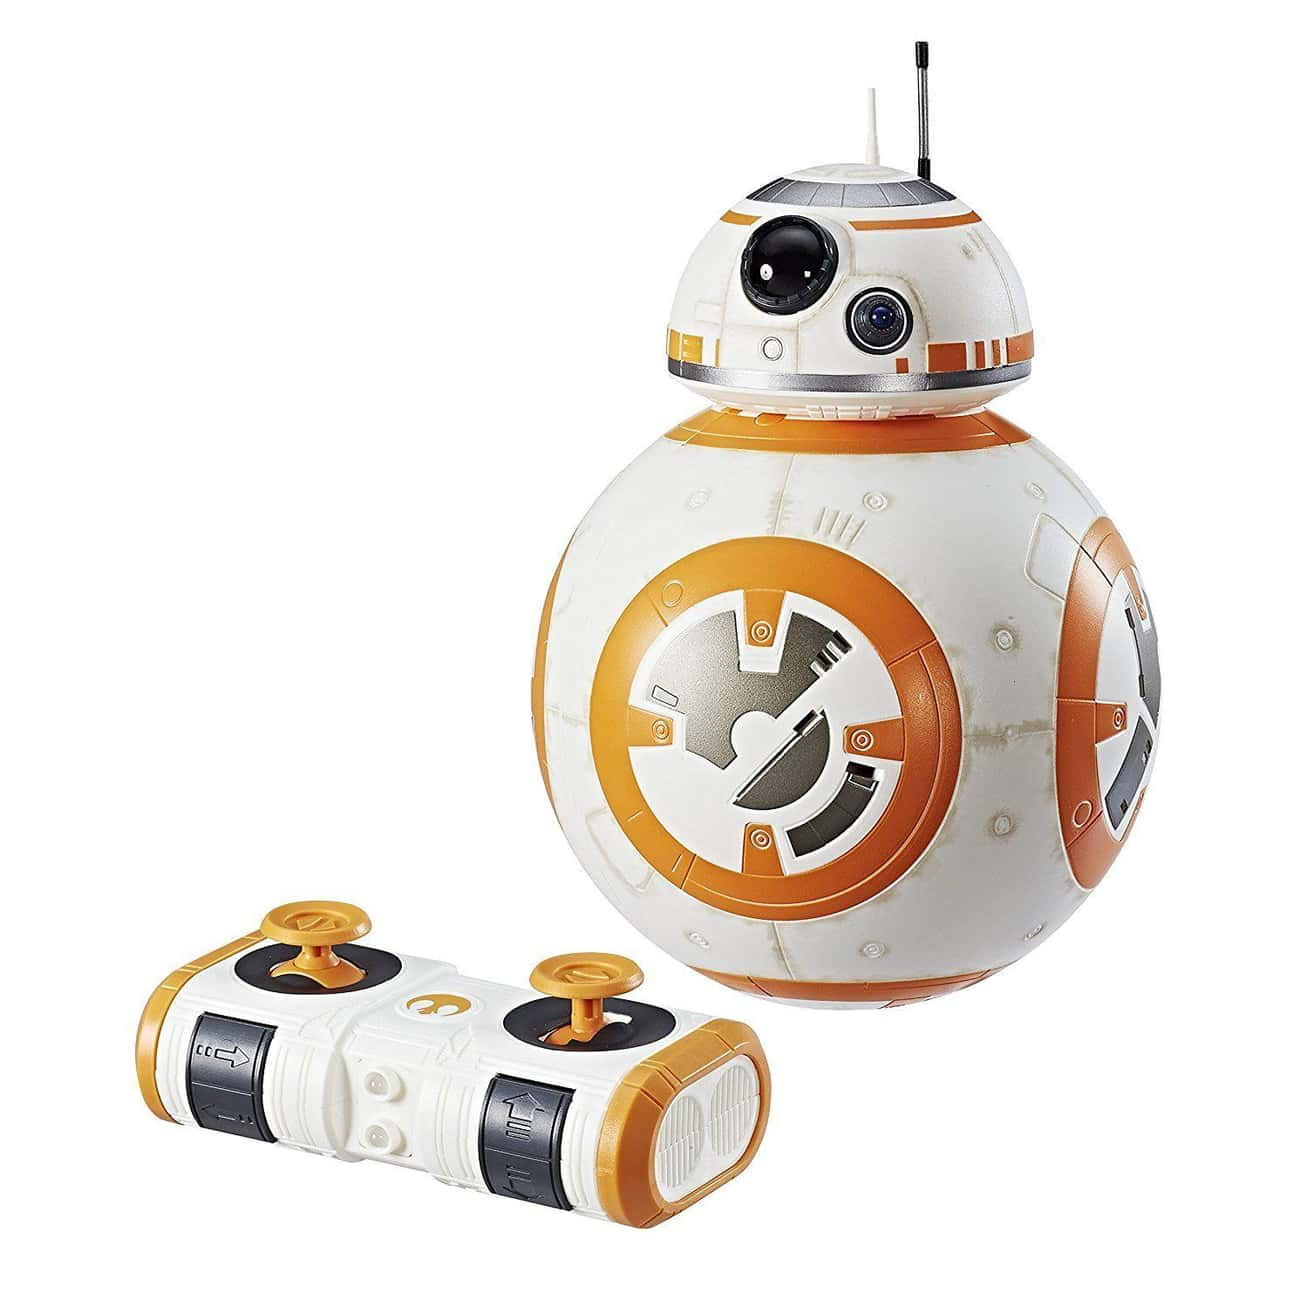 Hyperdrive BB-8 is listed (or ranked) 3 on the list 19 Gifts For Your Friend Who's Really Into Star Wars: The Last Jedi